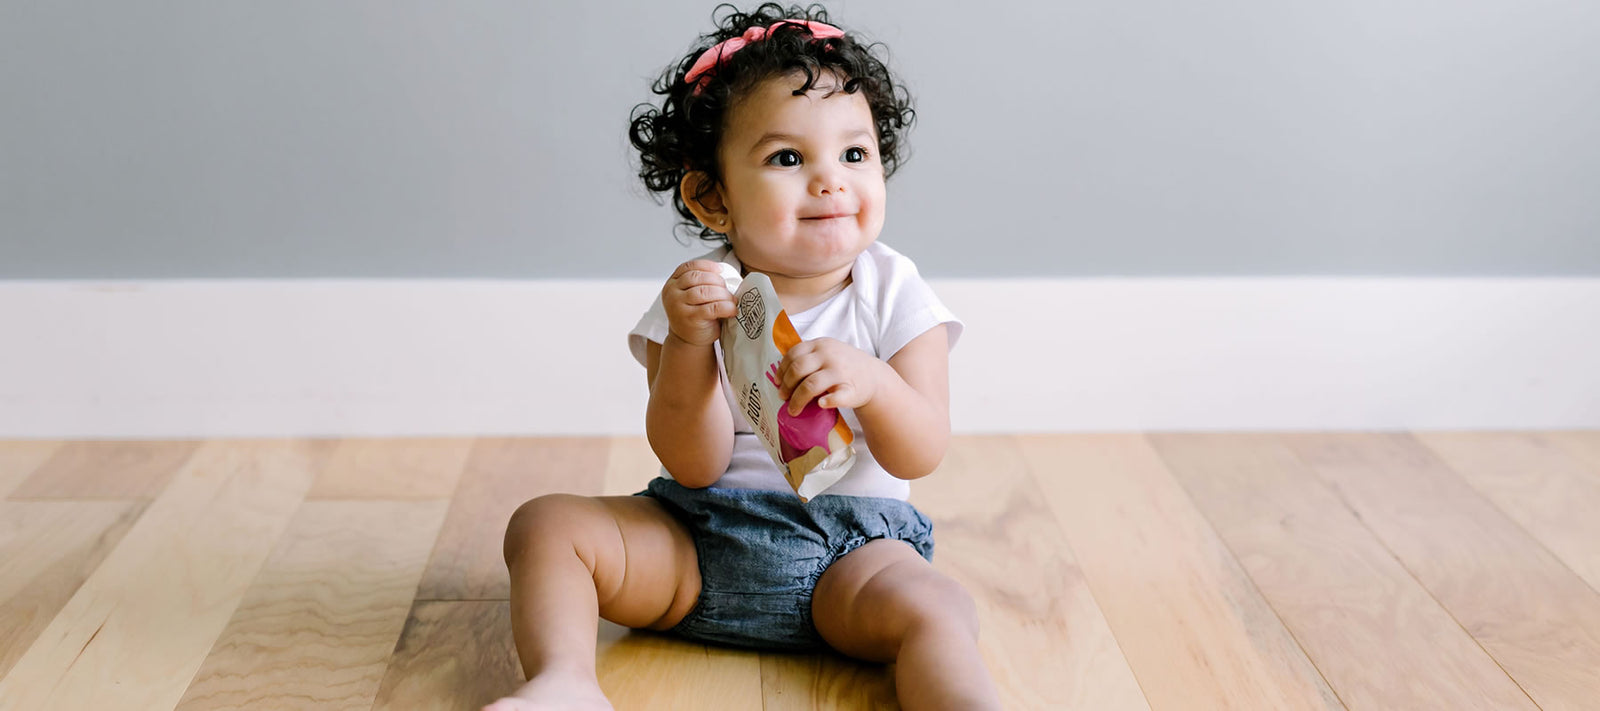 Latest News & Updates - A Baby Food Blog | Serenity Kids